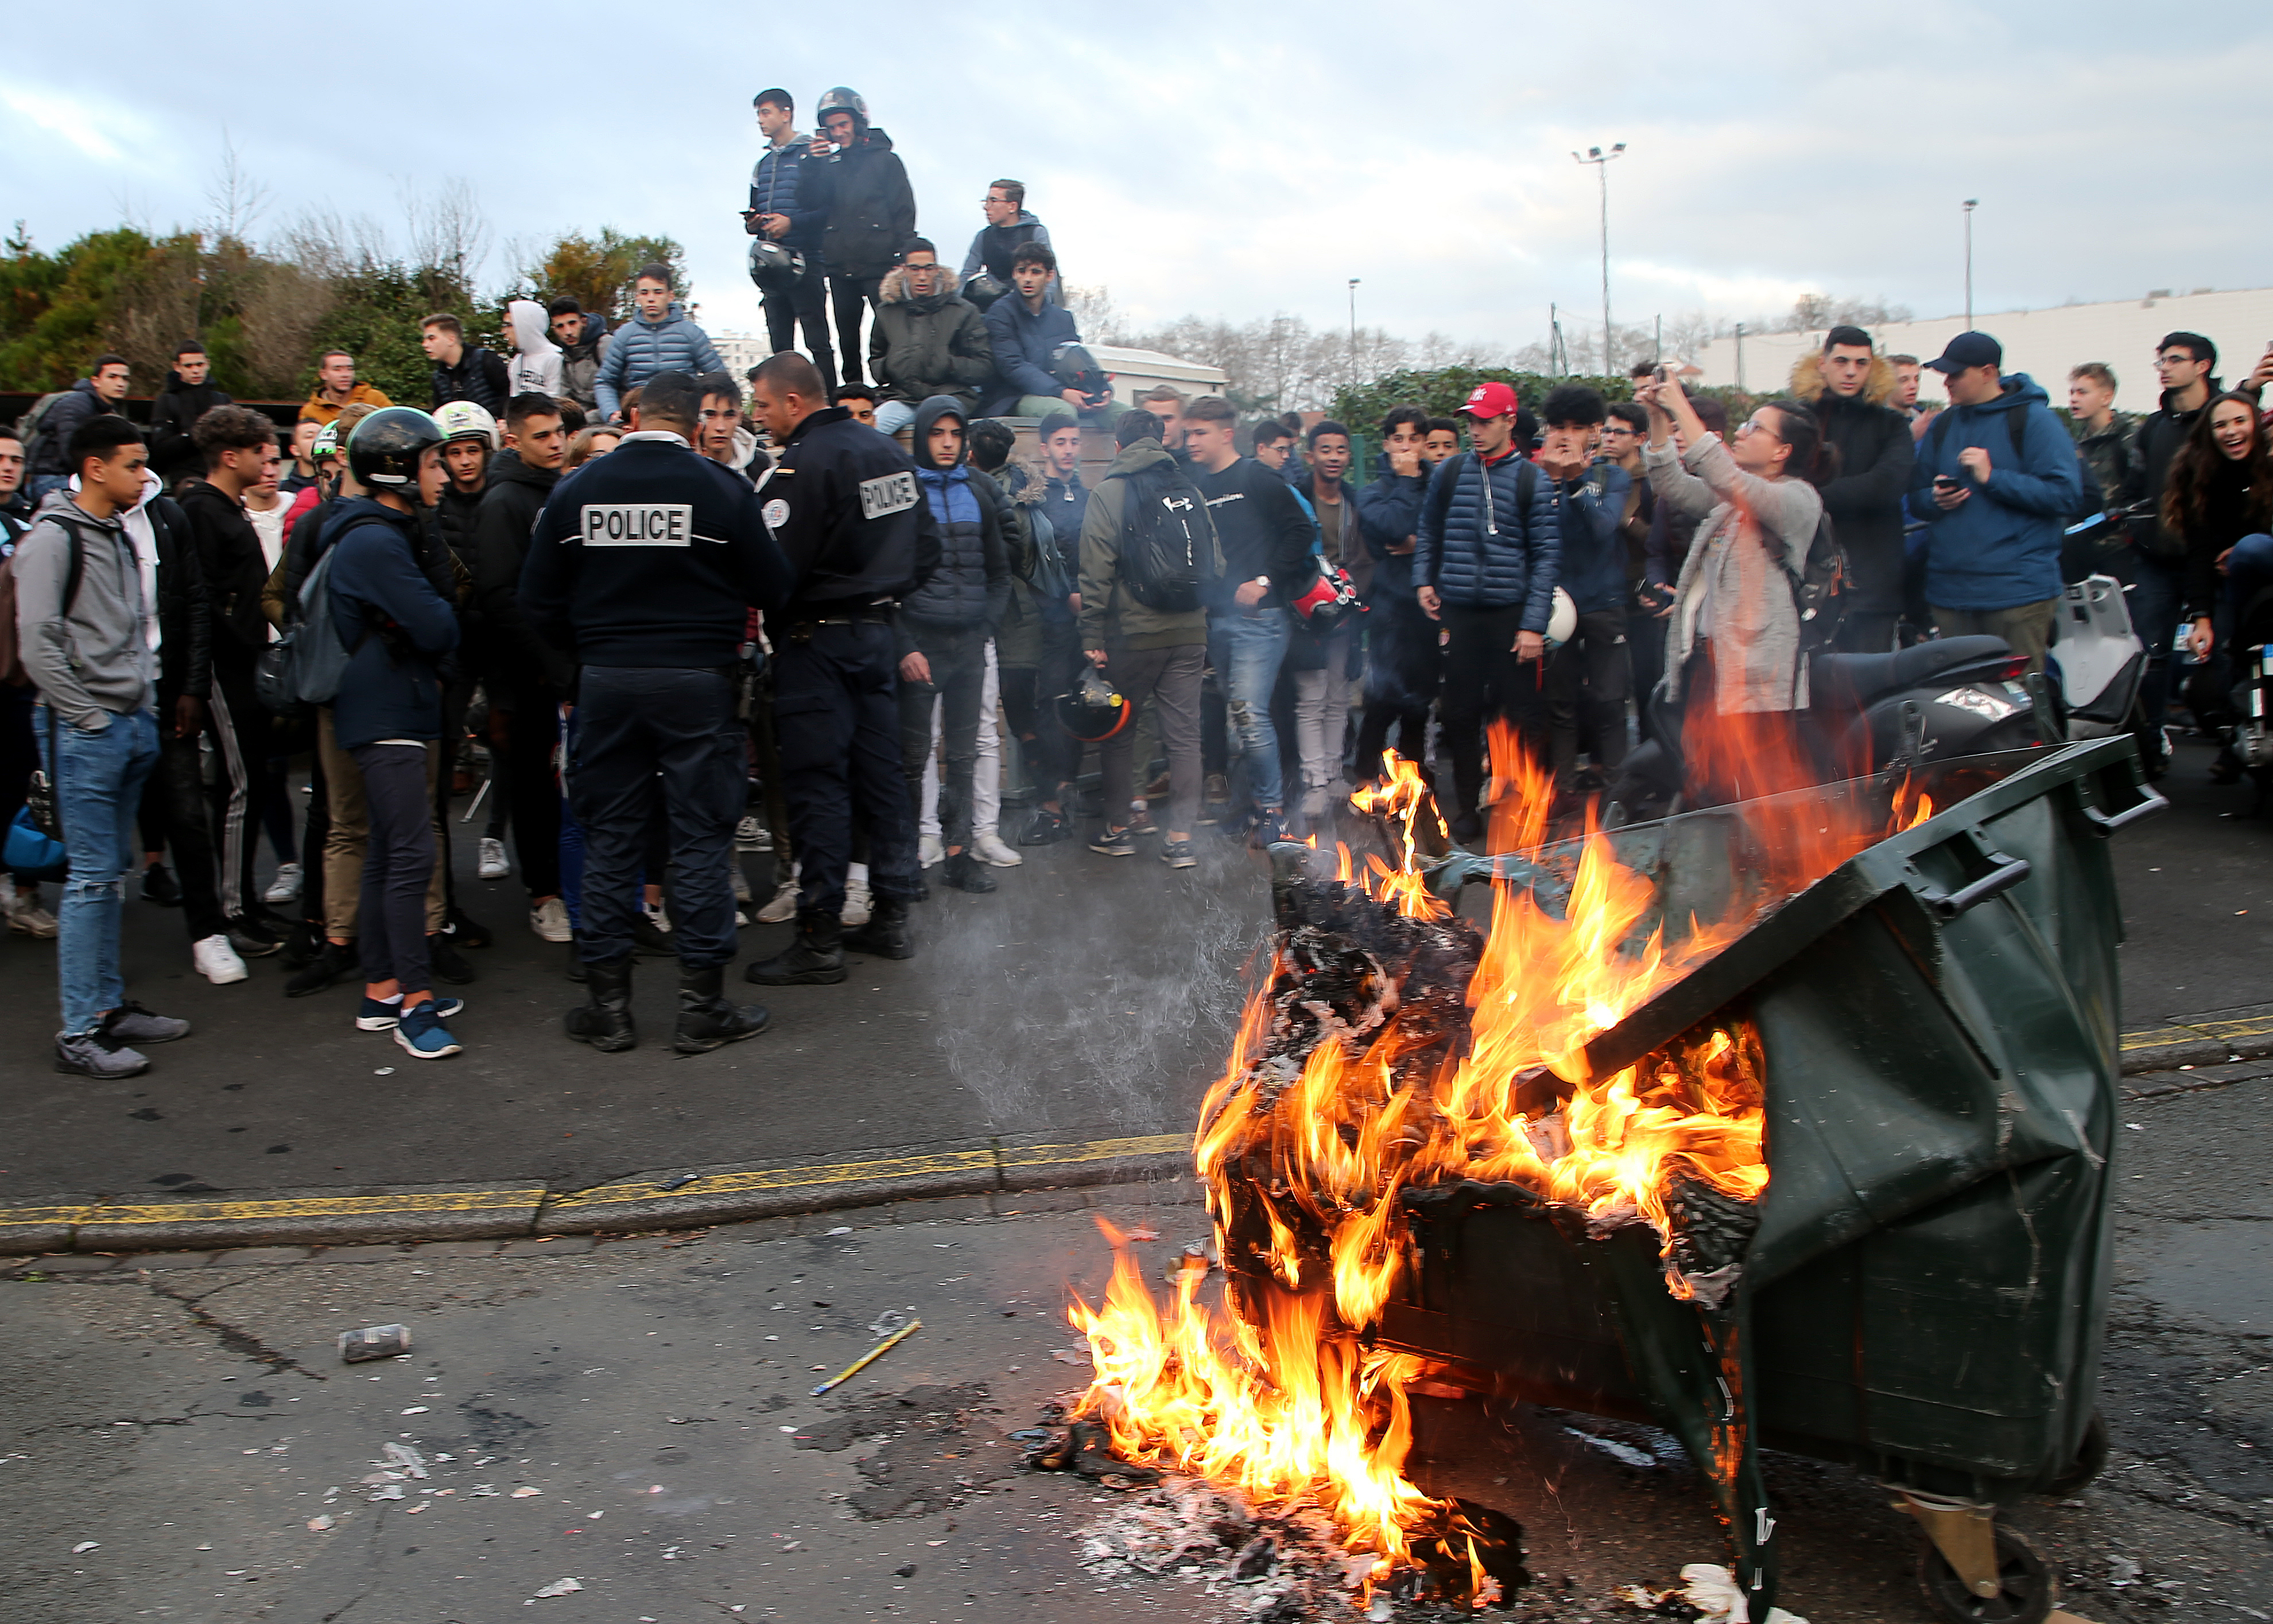 Students talk to police officers by a burning trash bin outside their school in Bayonne, southwestern France, Thursday, Dec.6, 2018. Protesting students are disrupting schools and universities Thursday, and drivers are still blocking roads around France, now demanding broader tax cuts and government aid. (AP Photo/Bob Edme)